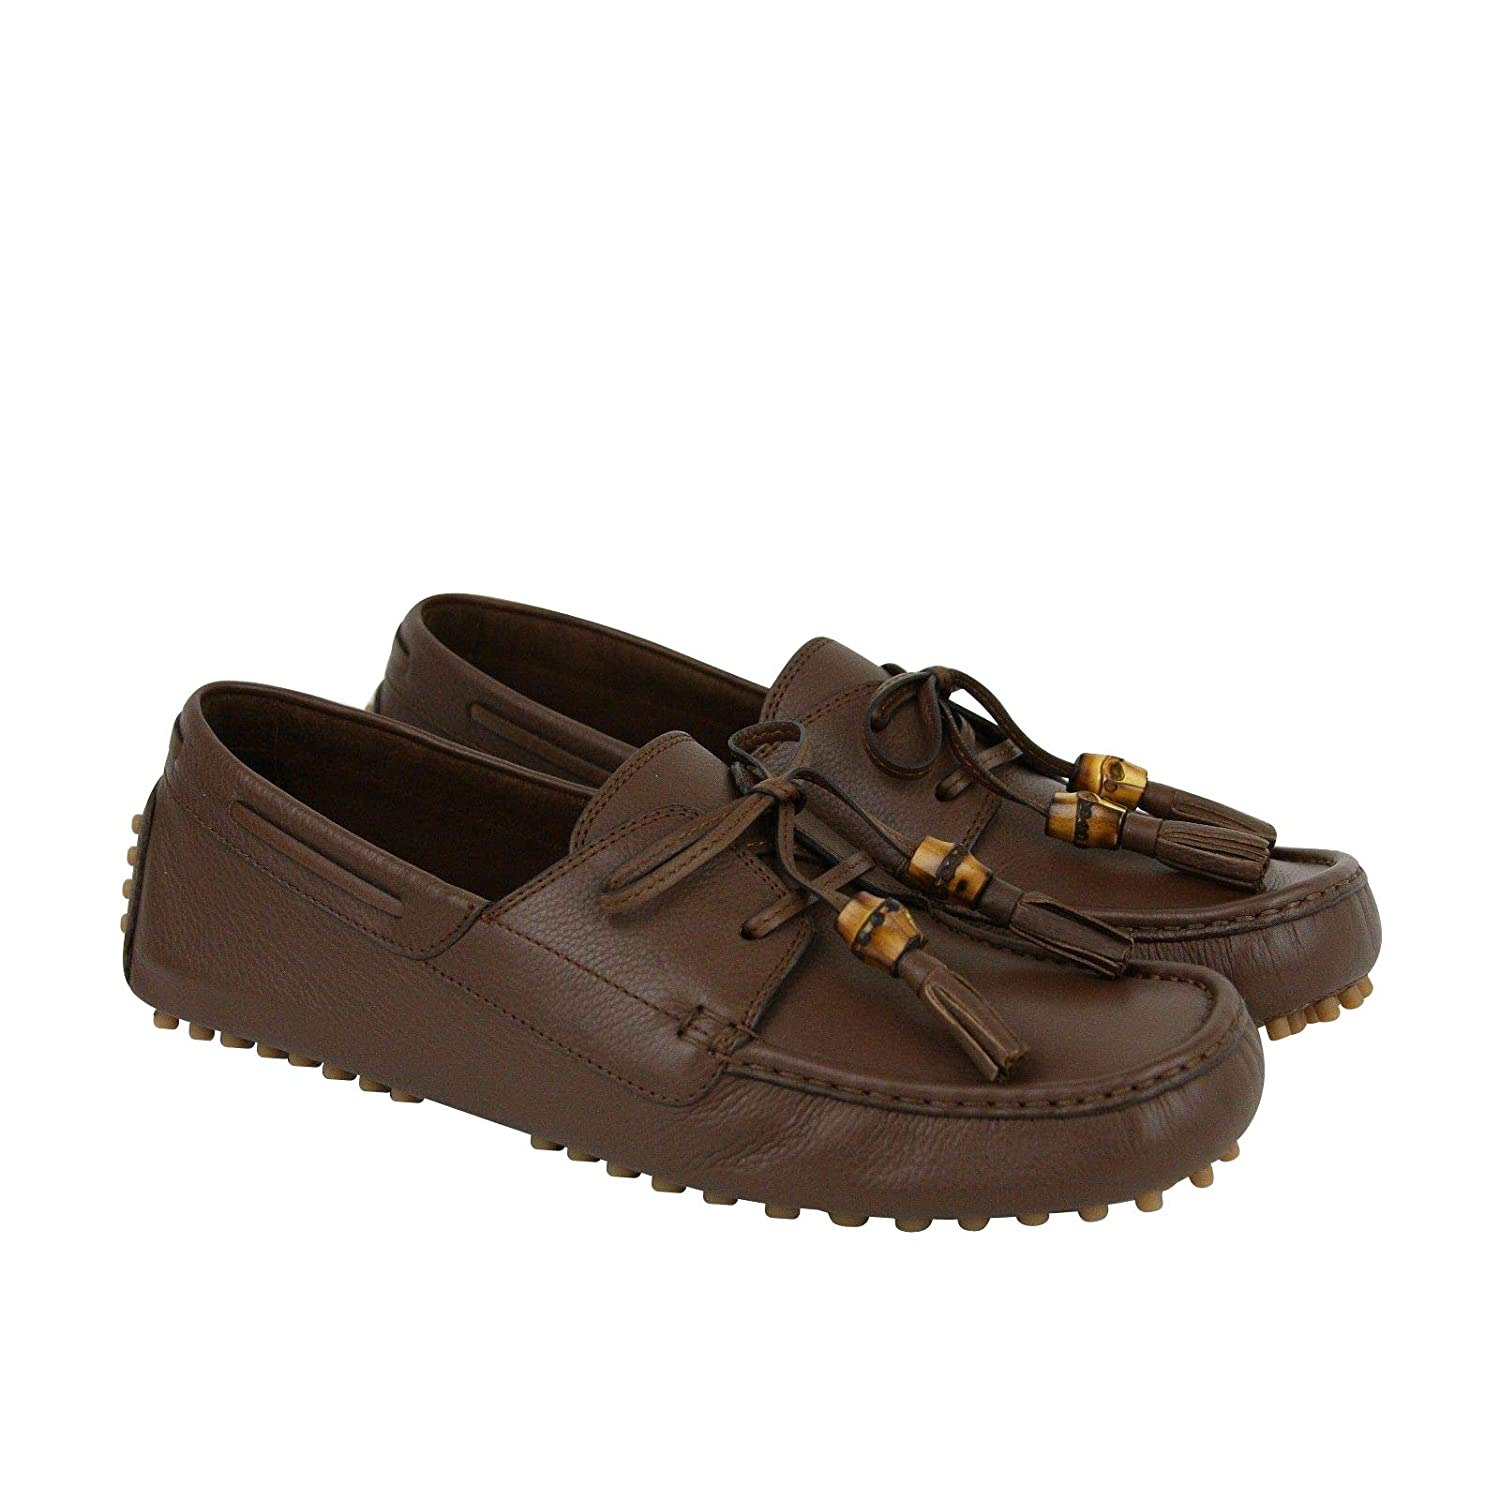 c8a6cc75f Amazon.com: Gucci Bamboo Tassel Brown Leather Loafer Driver 367923 2138:  Shoes